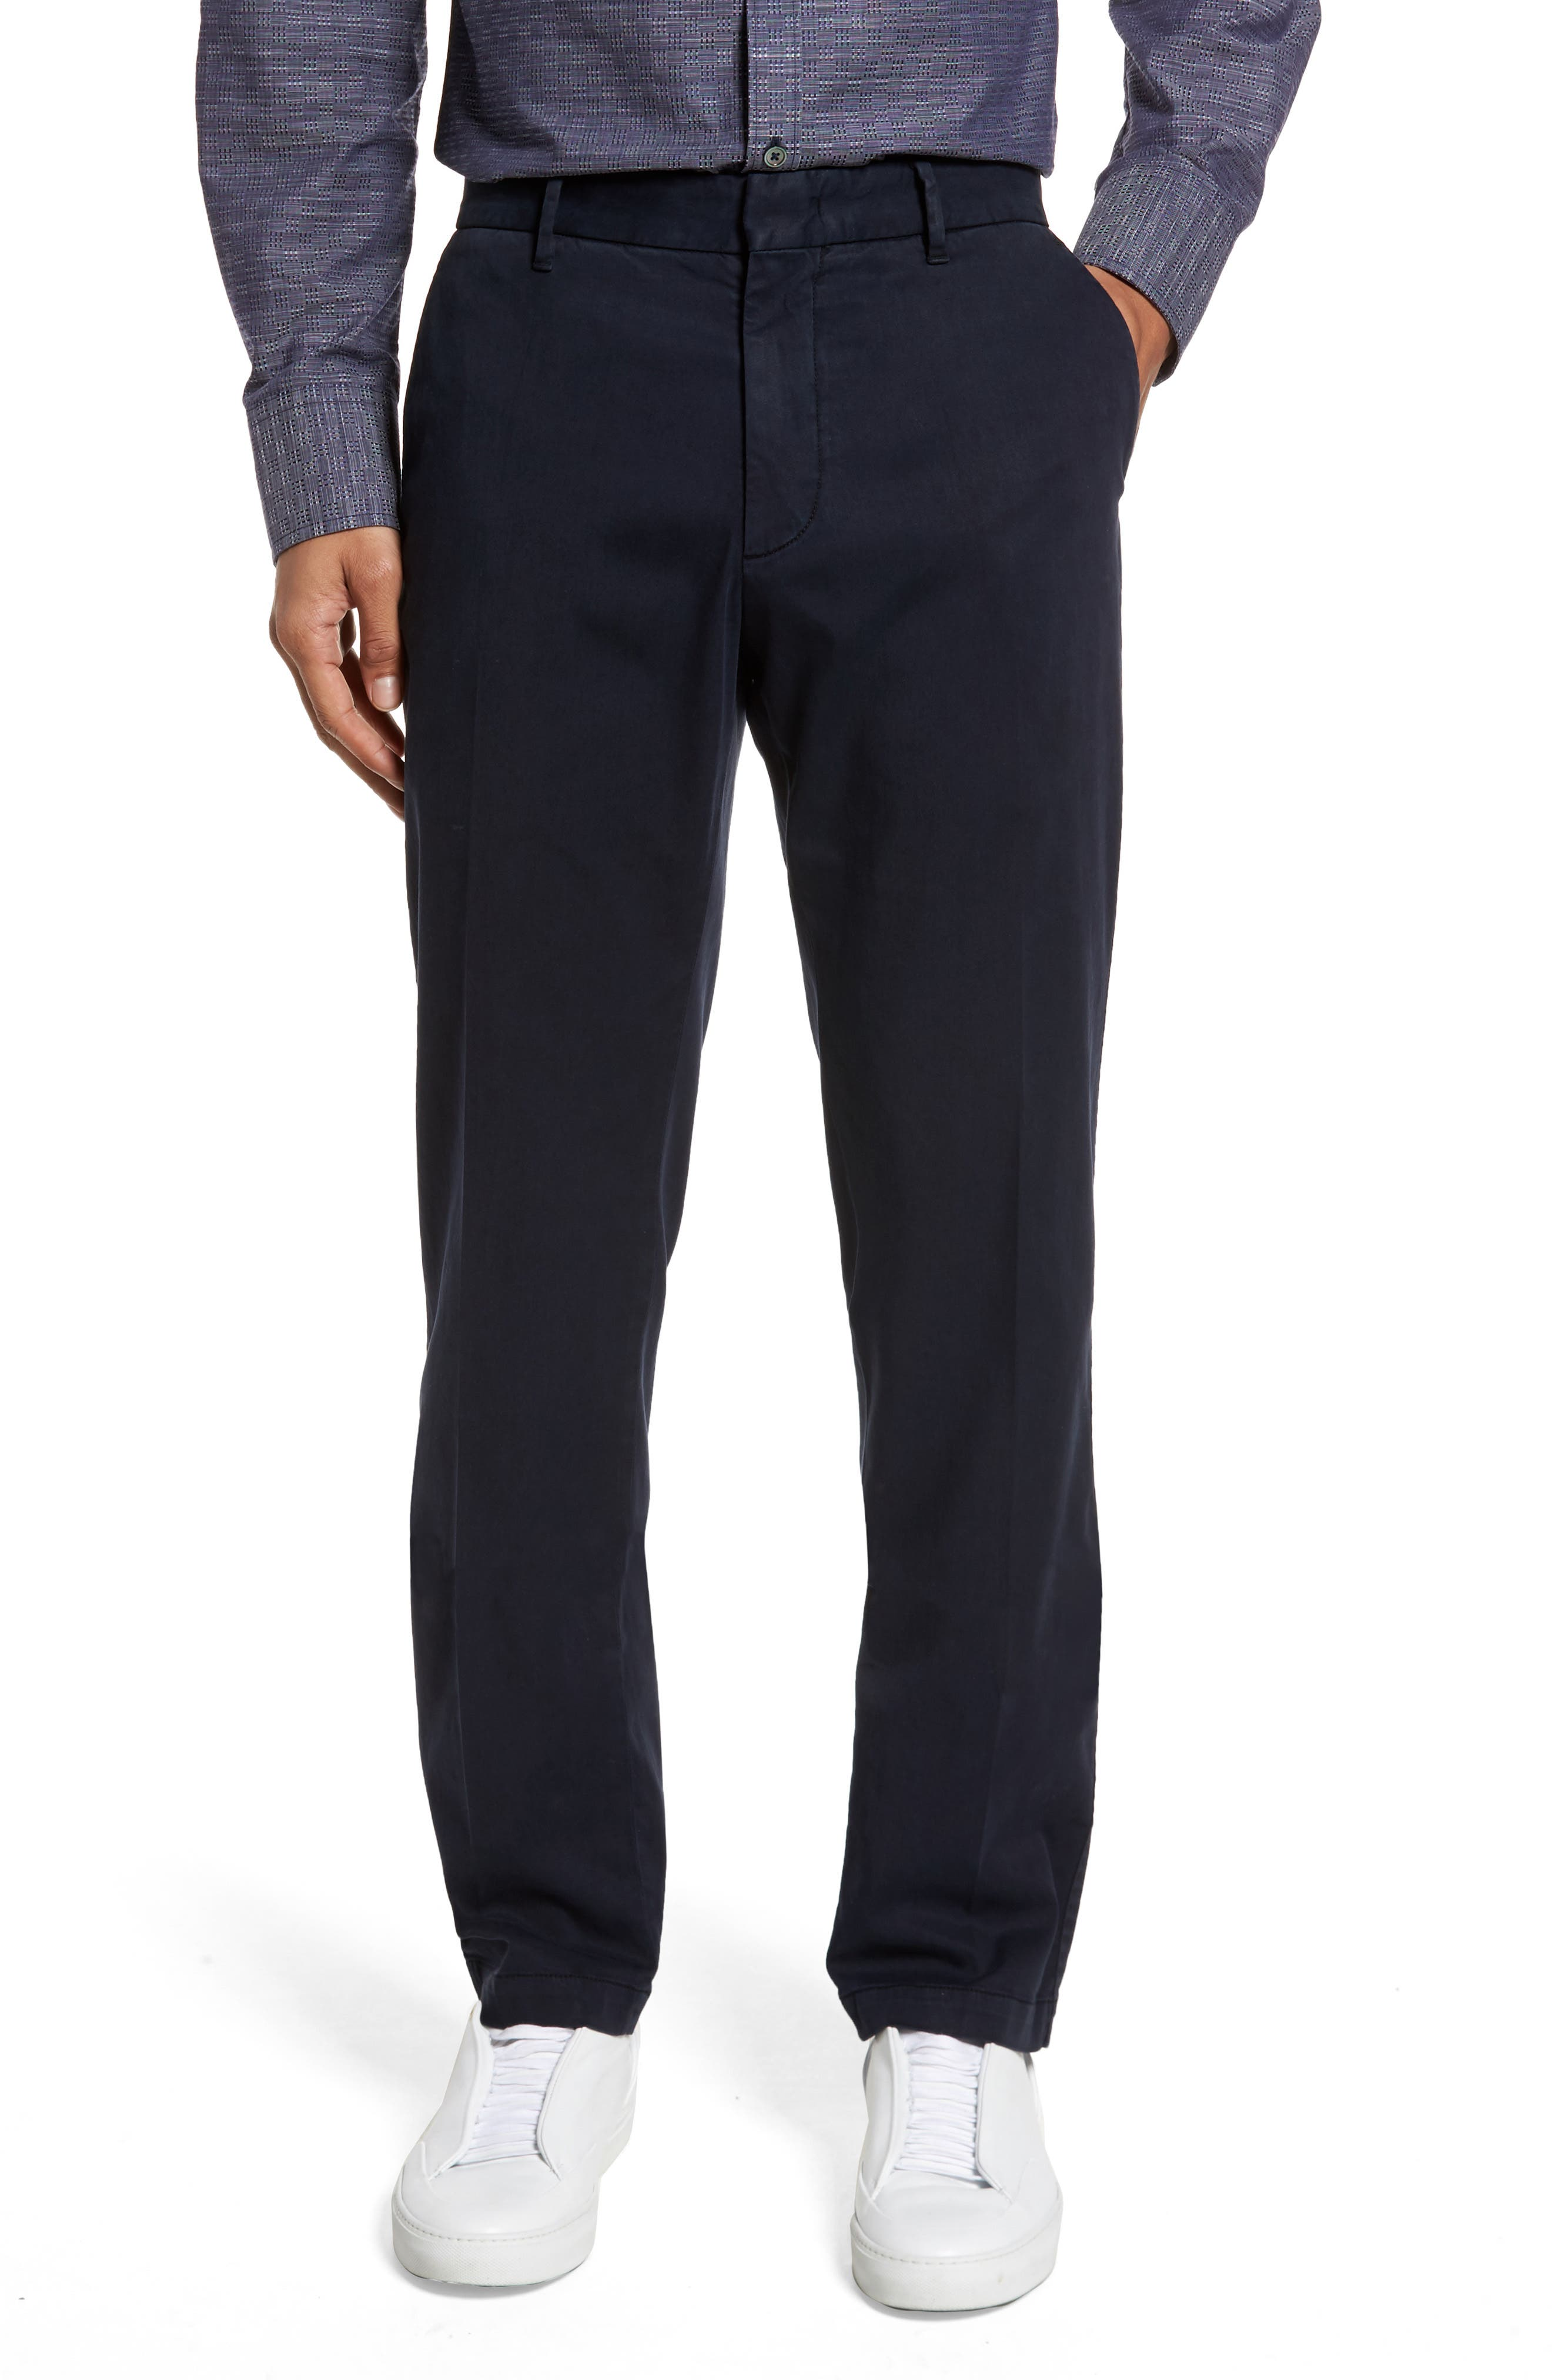 ZACHARY PRELL Aster Straight Fit Pants in Navy